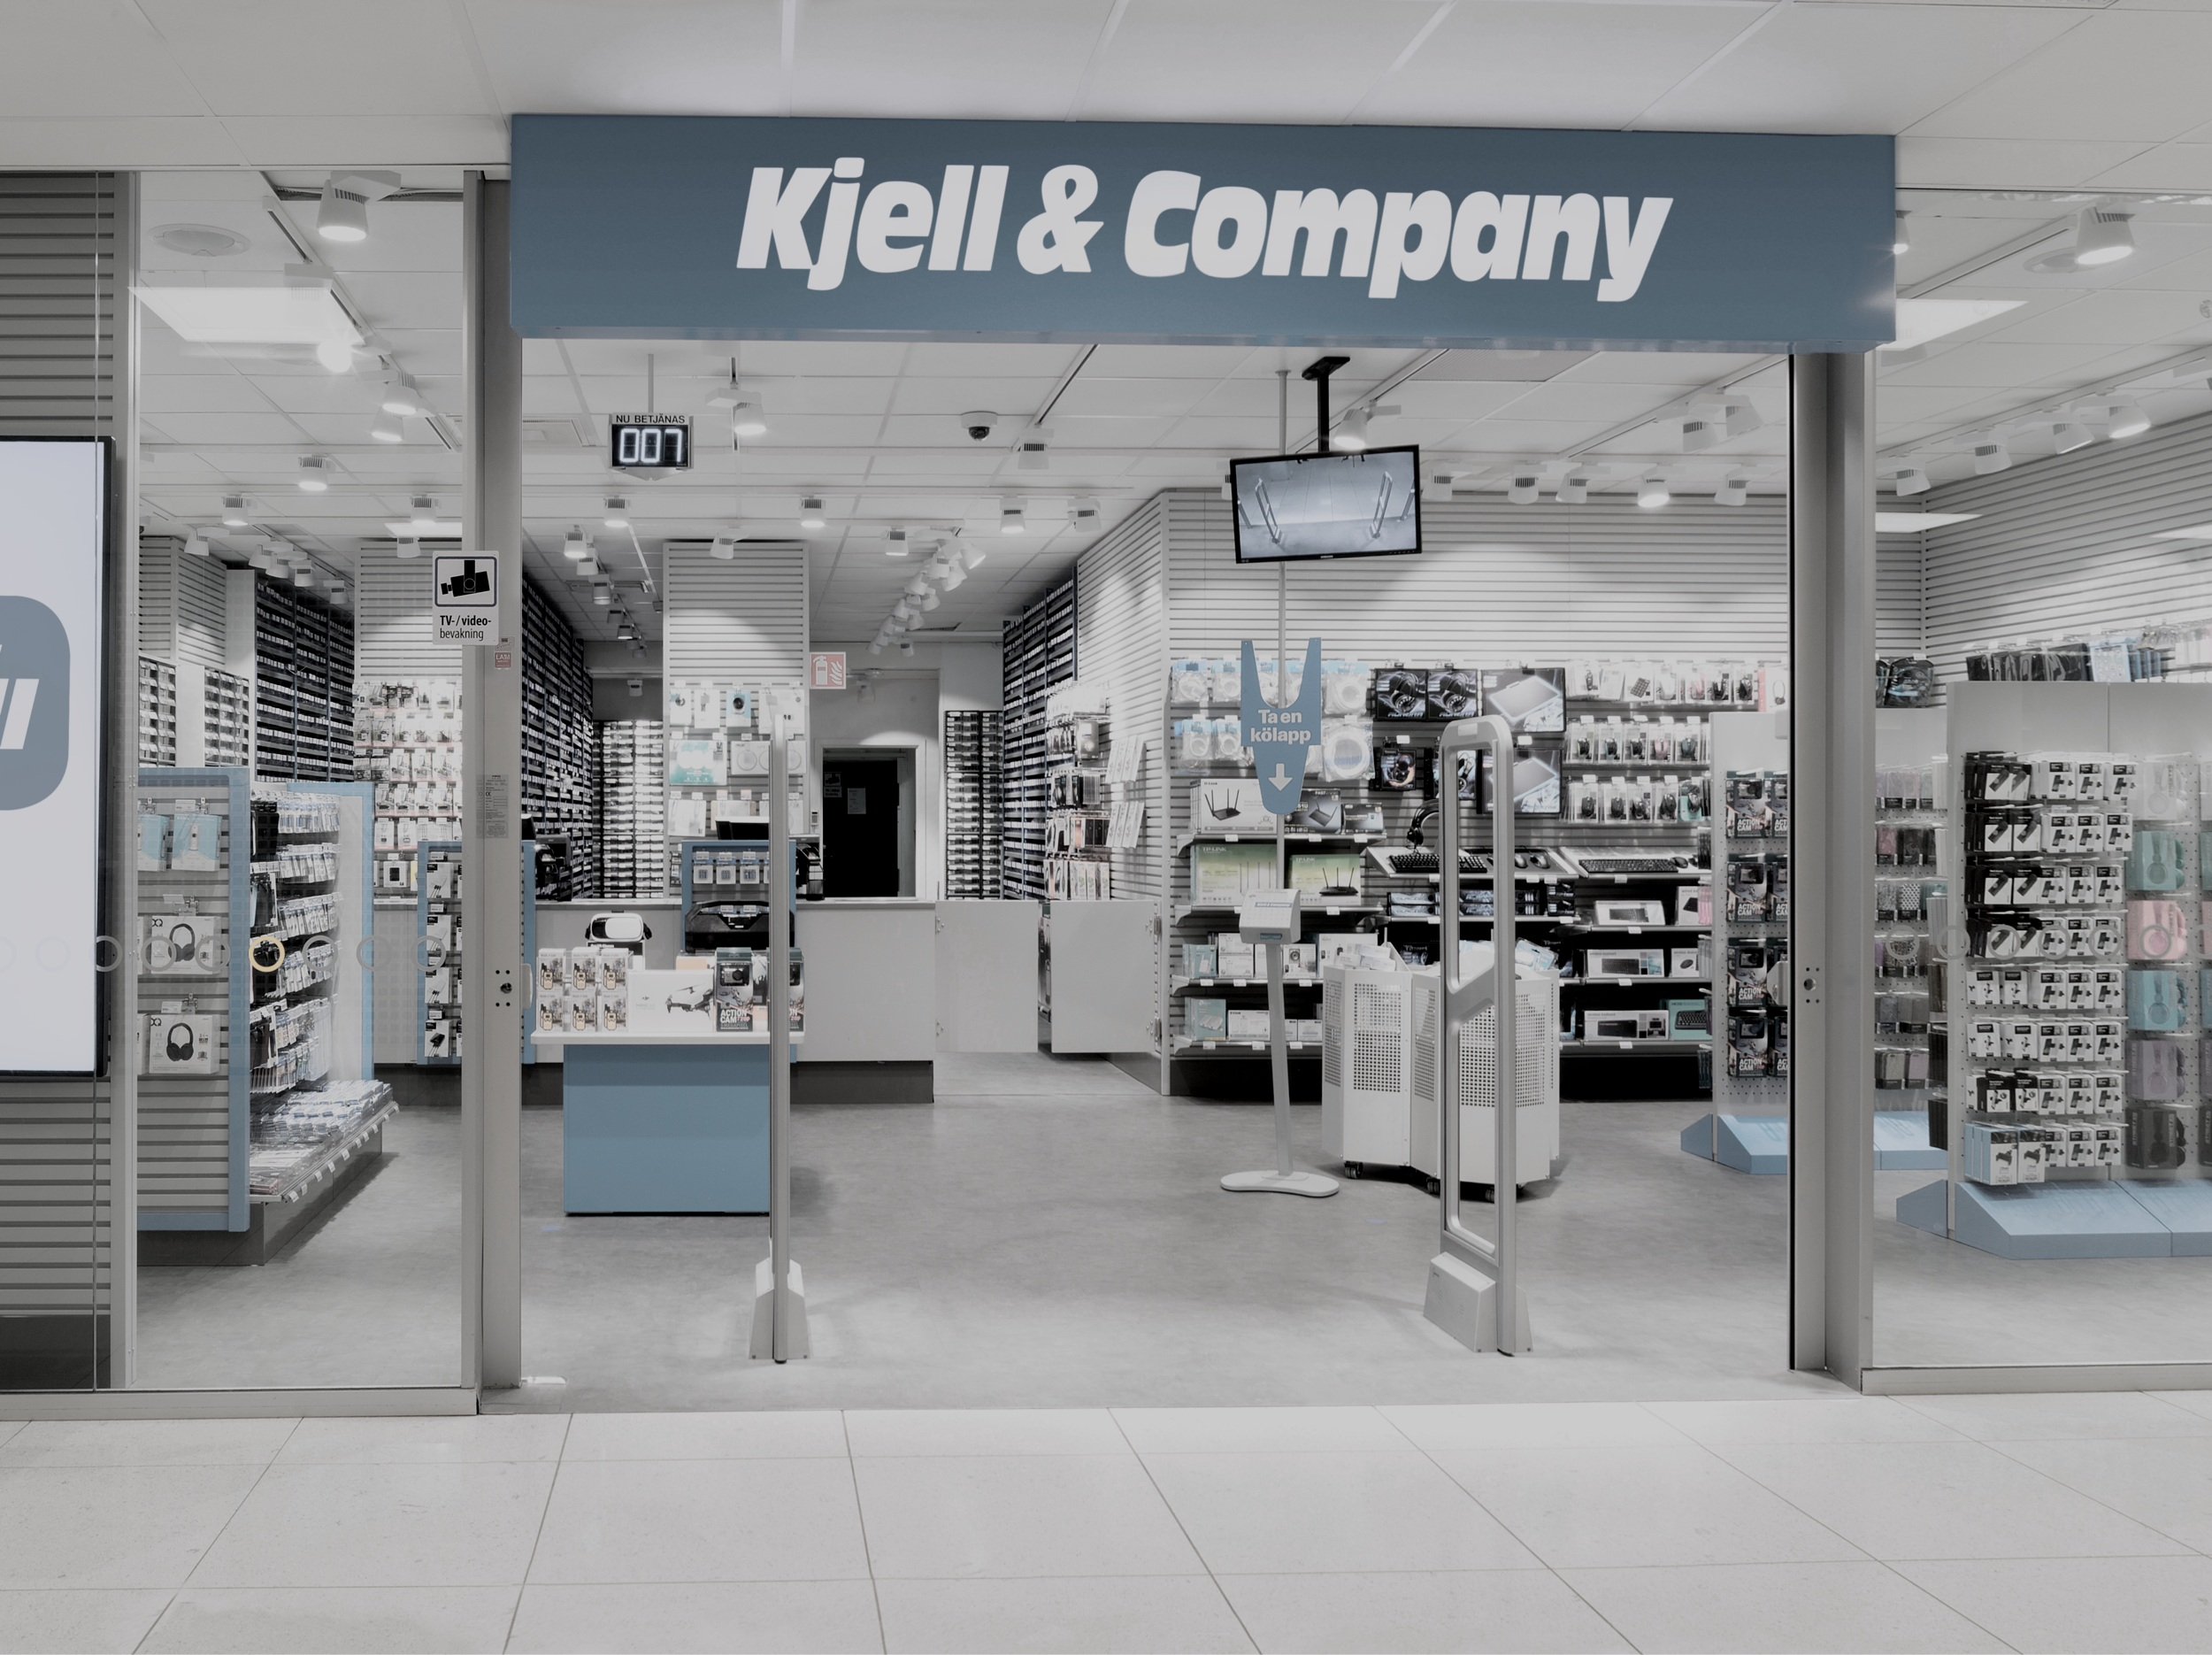 Kjell & Company  ➞ Fast growing retailer with small outlets in convenient locations selling a wide range of home electronics and accessories. 104 stores, 1000 employees and $160M in turnover 2018.